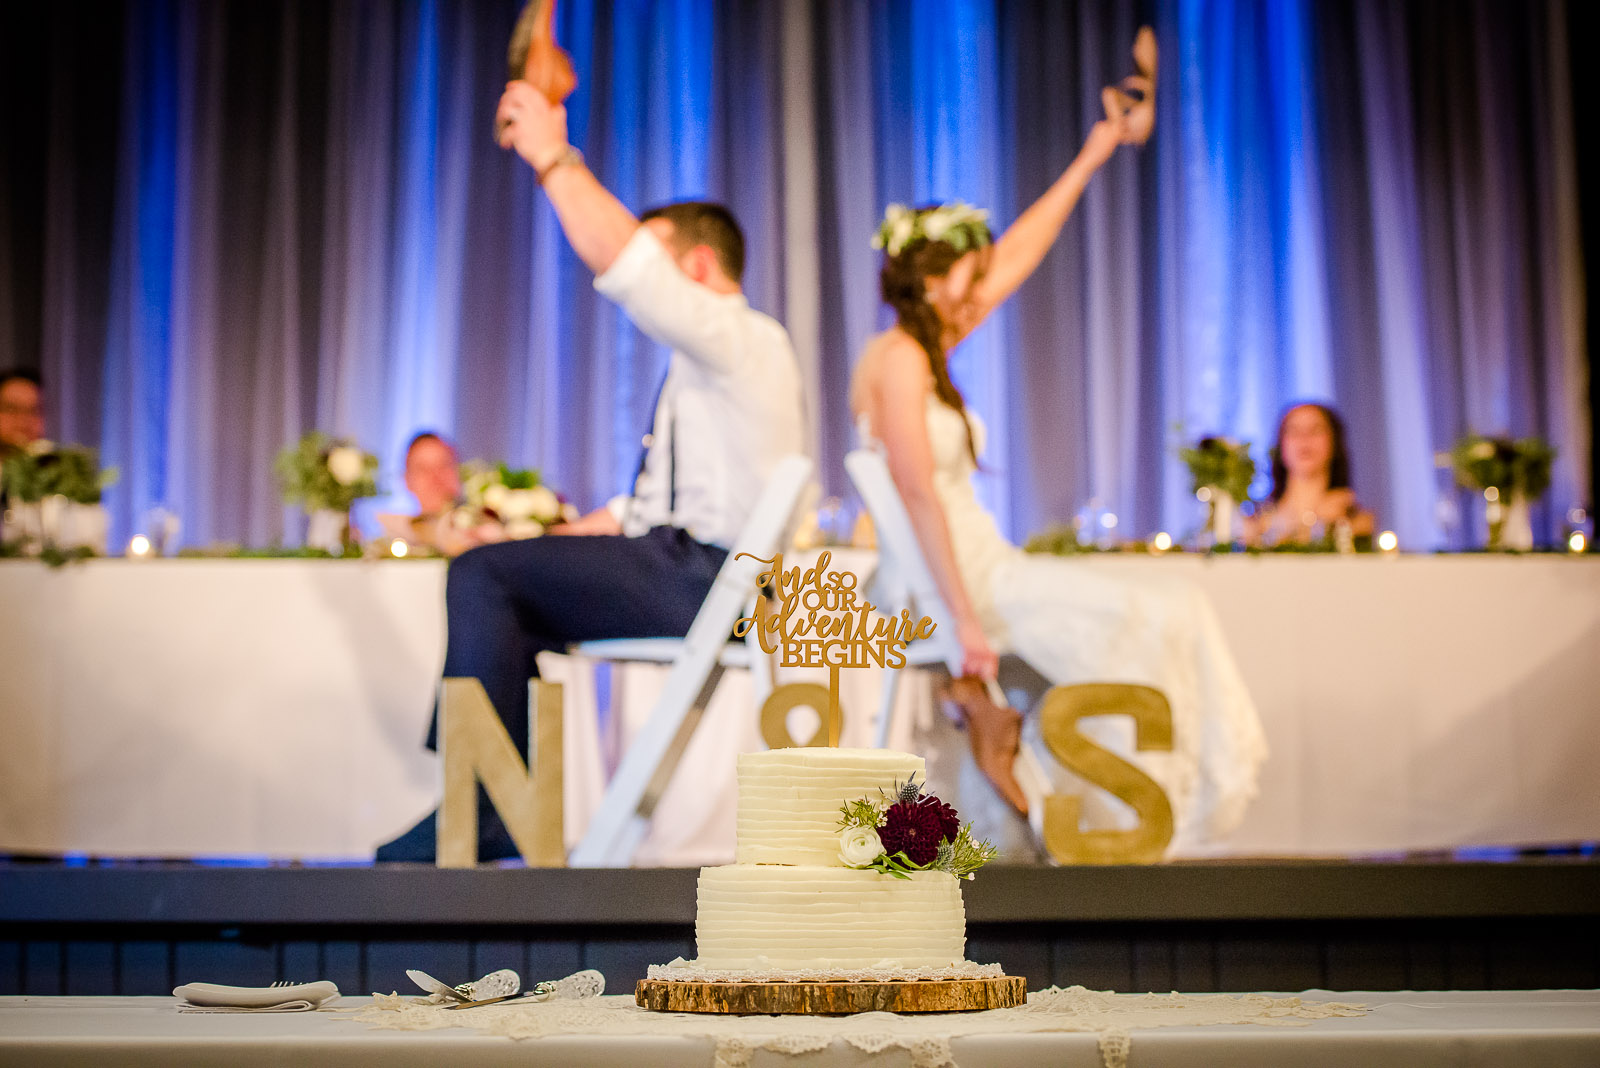 Eric_and_Christy_Photography_Blog_2018_Wed_moments-33